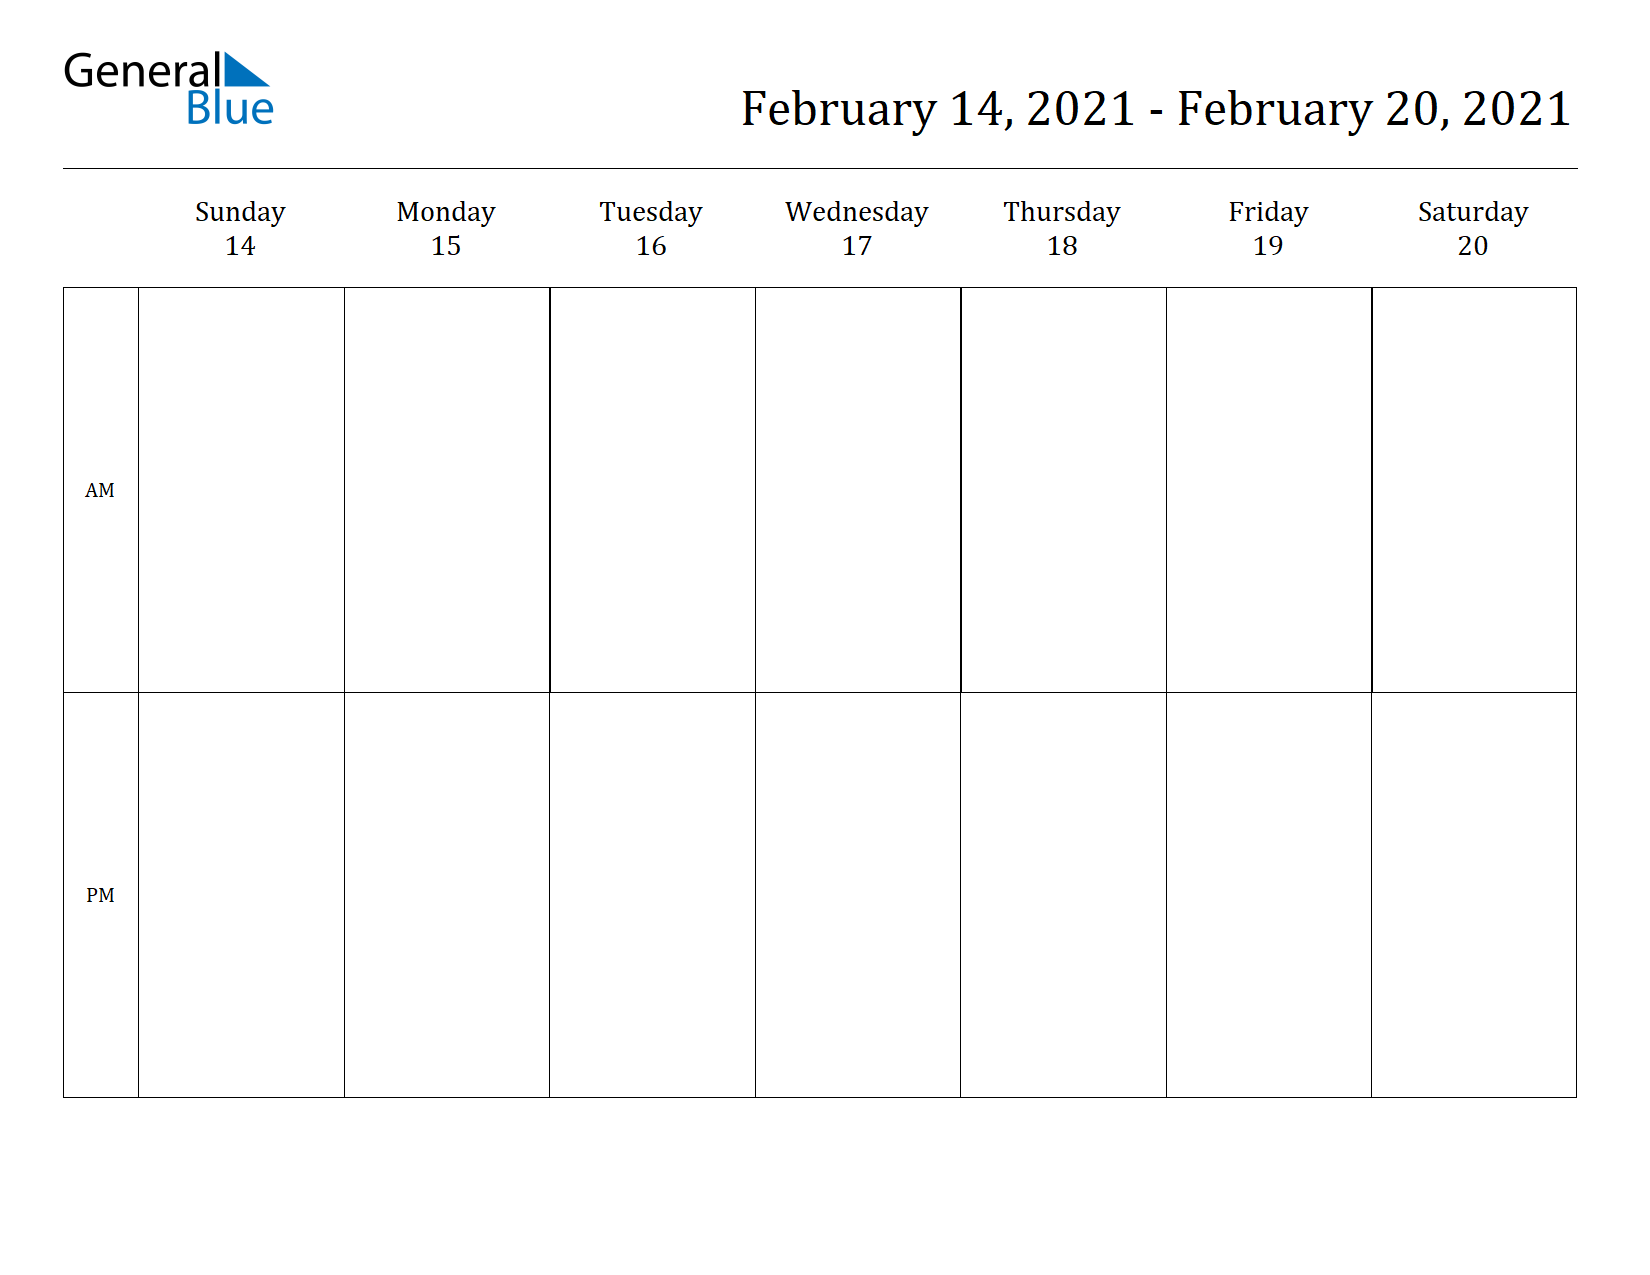 Weekly Calendar for Feb 14, 2021 to Feb 20, 2021